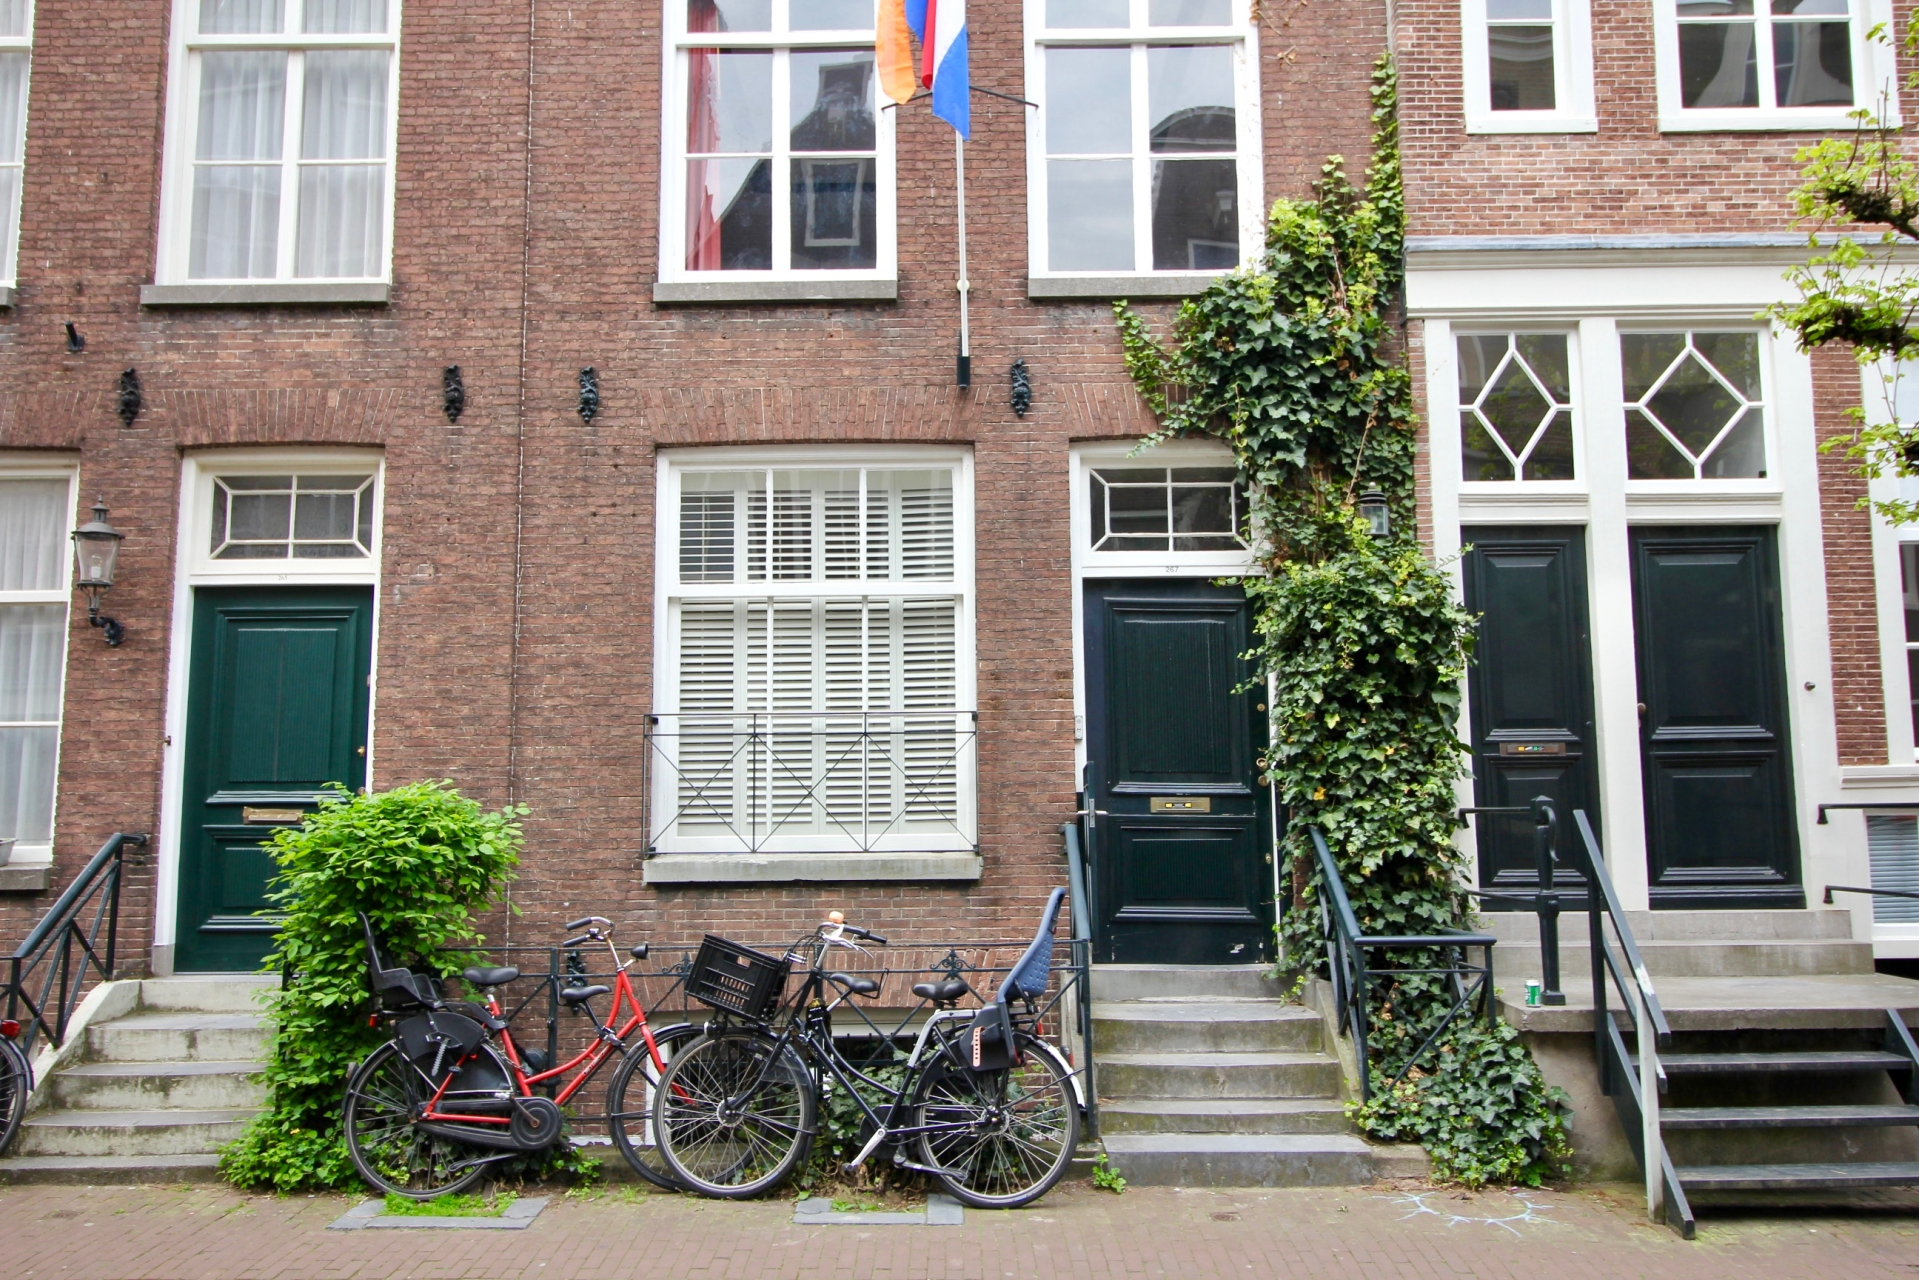 The Netherlands - 33